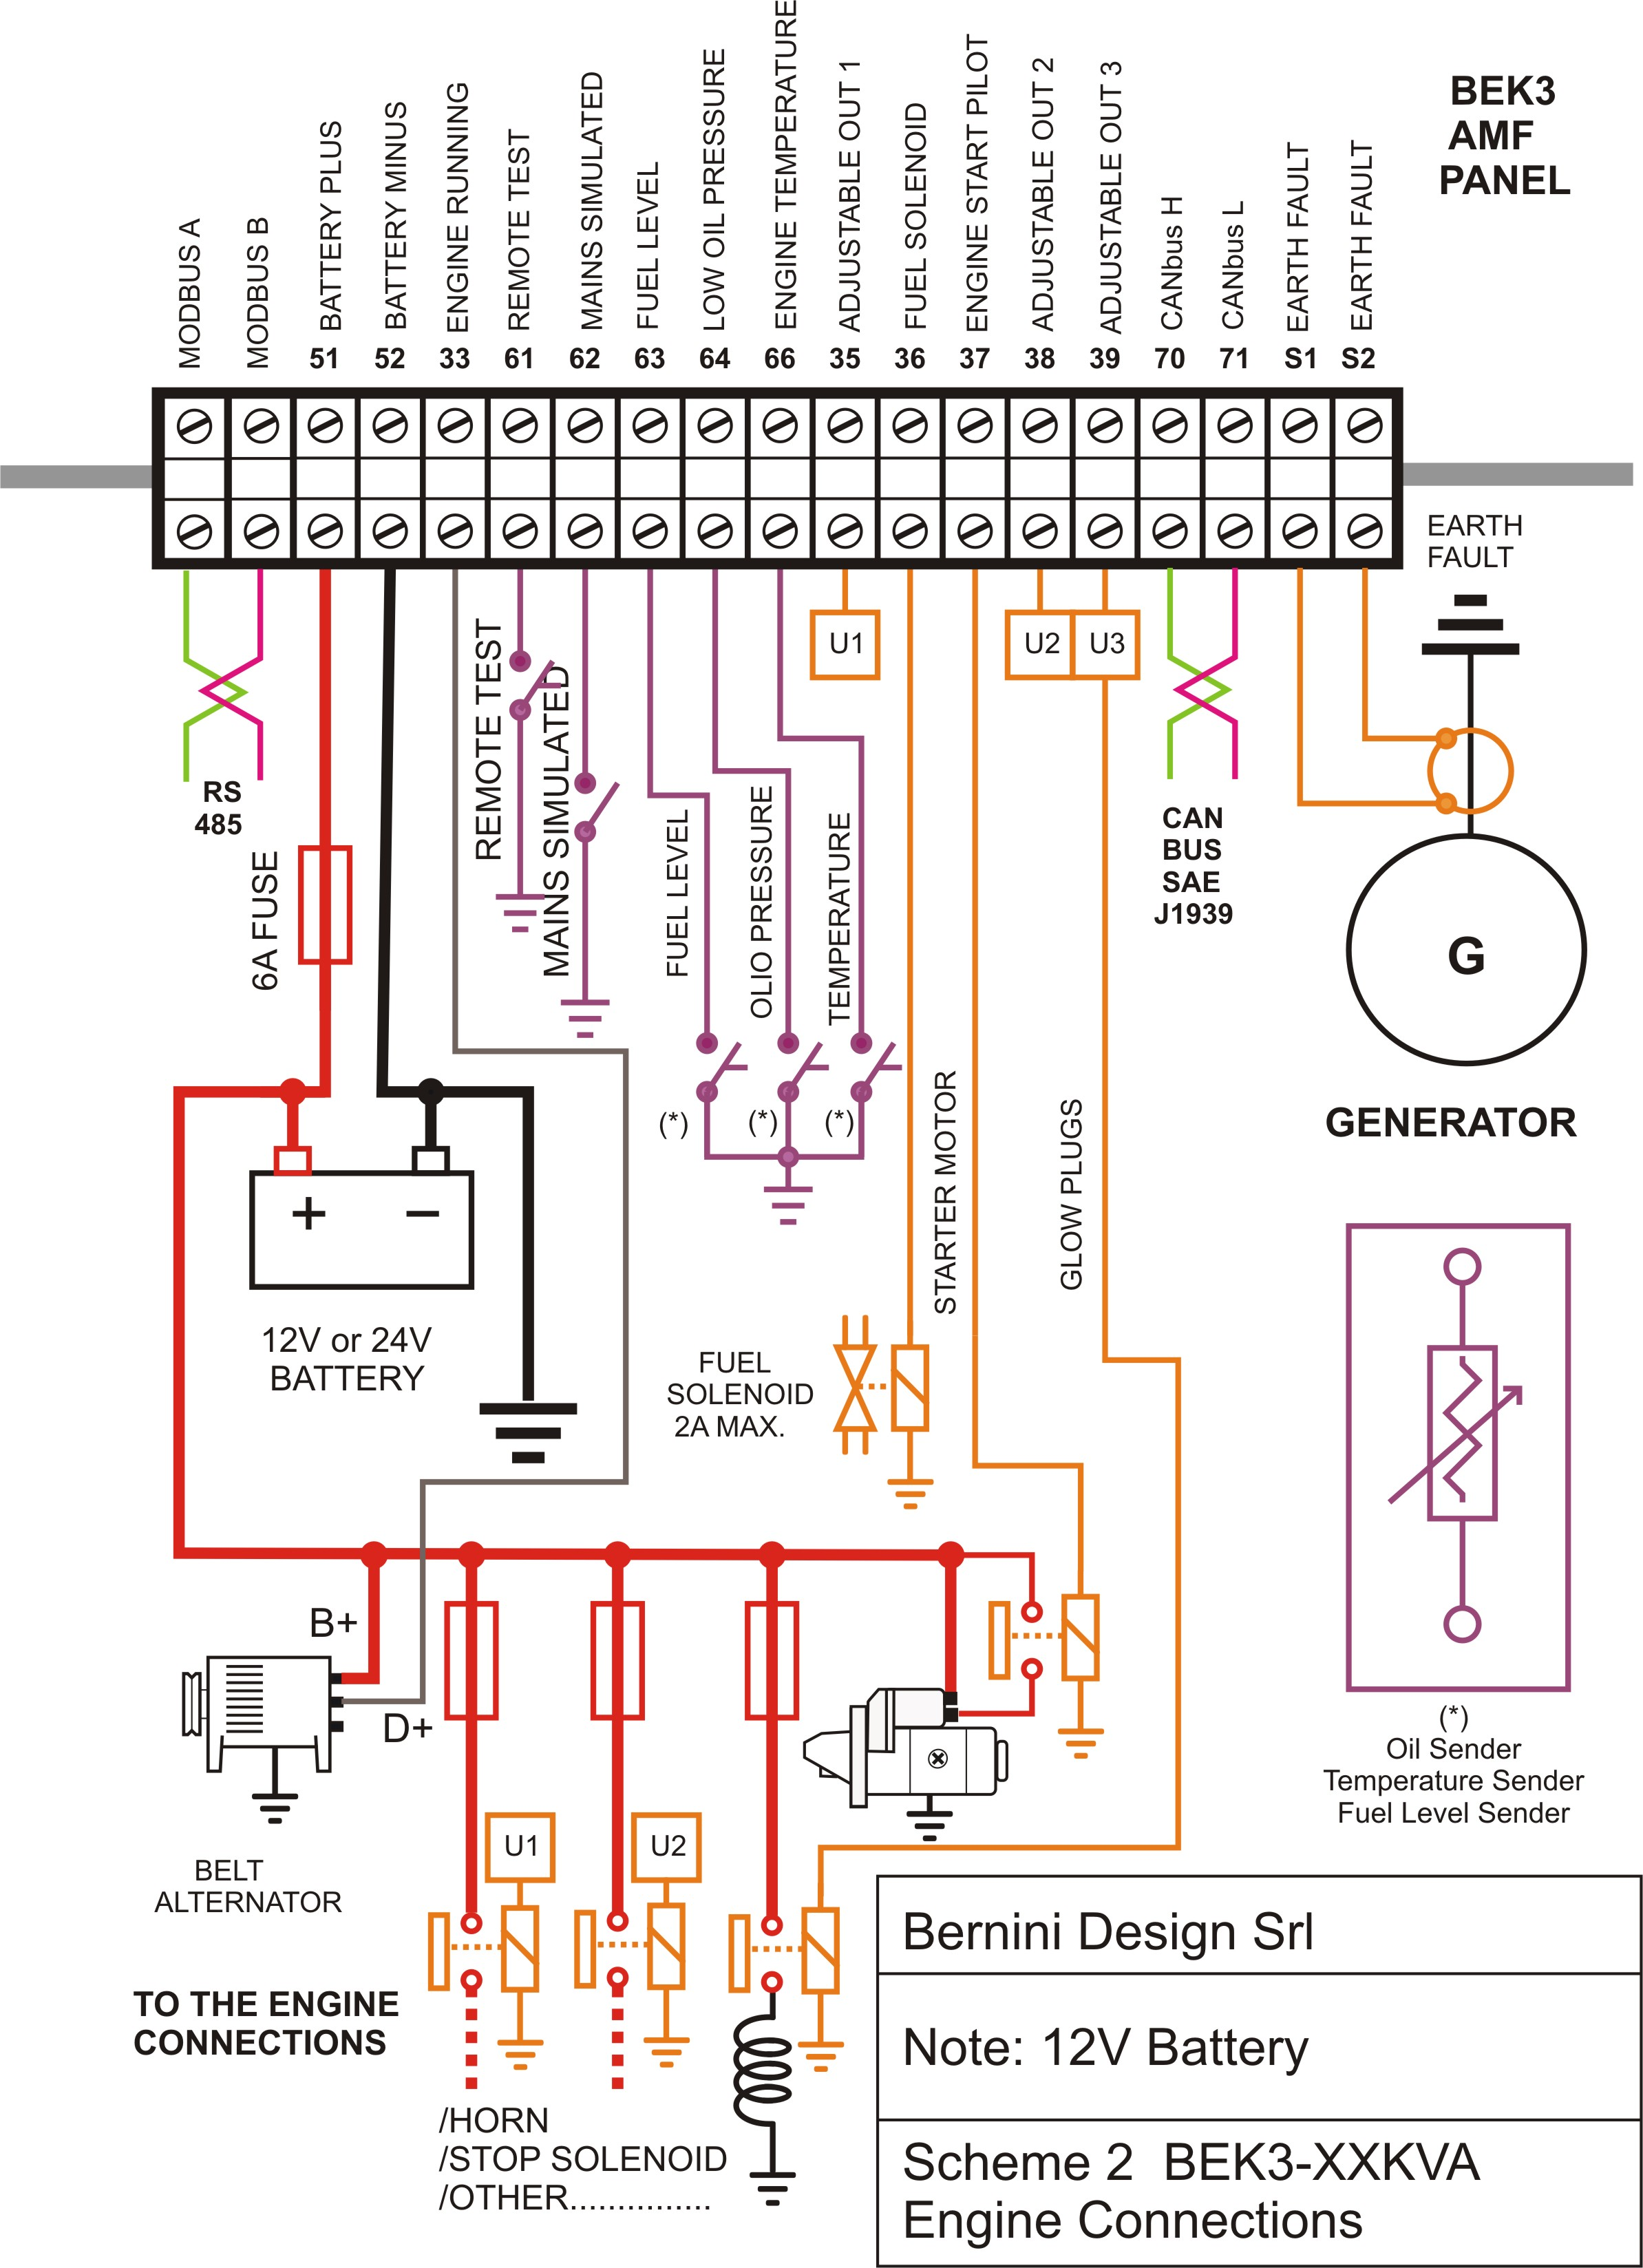 AMF Control Panel Wiring Diagram AC Connections